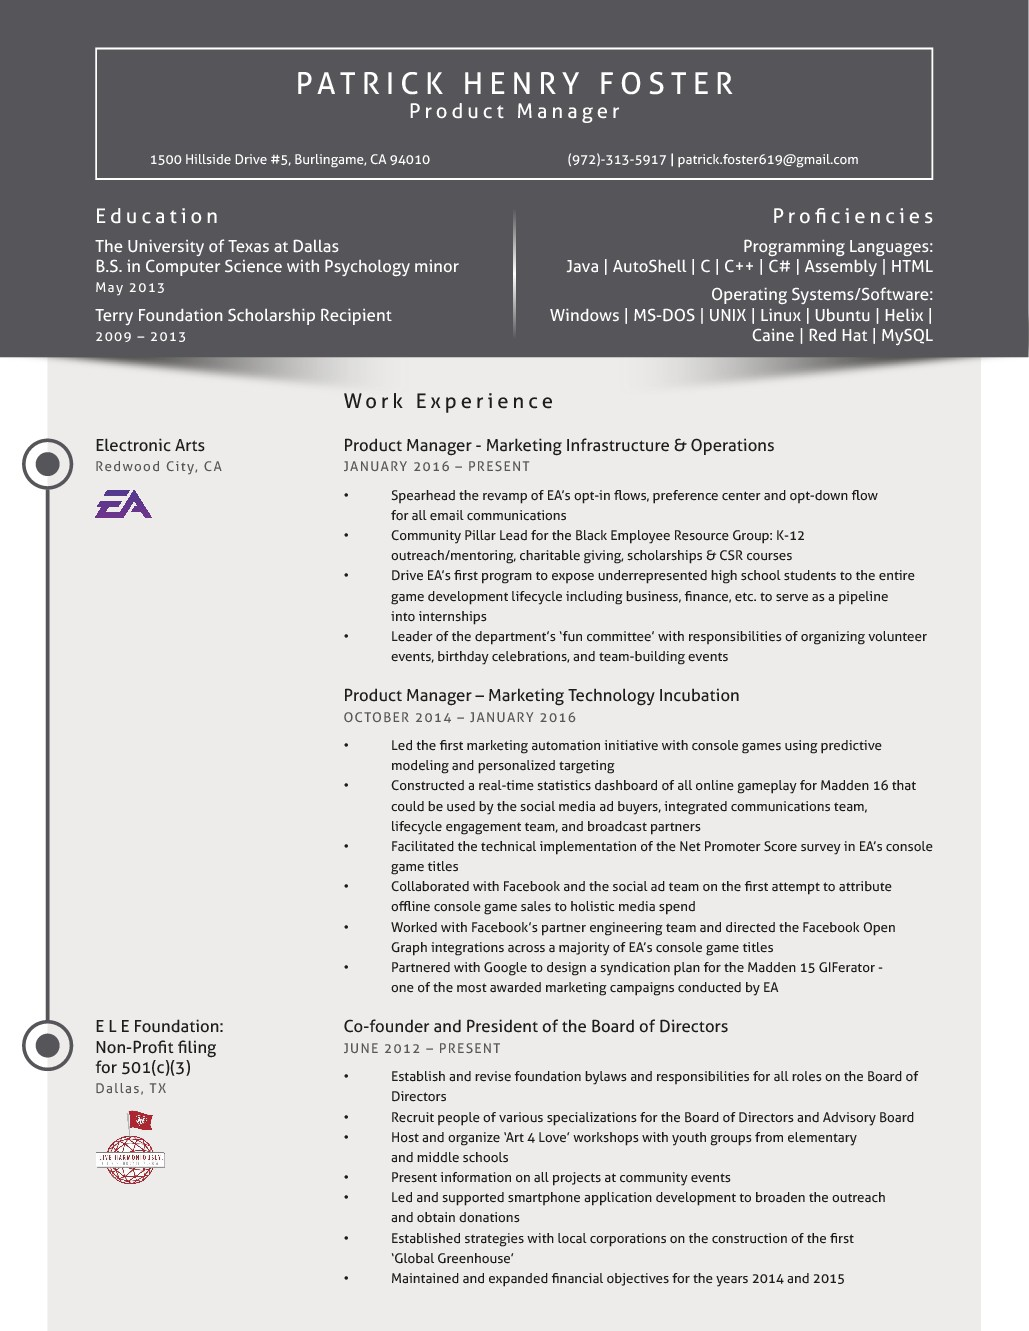 Resume Facelift for a Marketing, Software Development, & Philanthropic Young Professional.